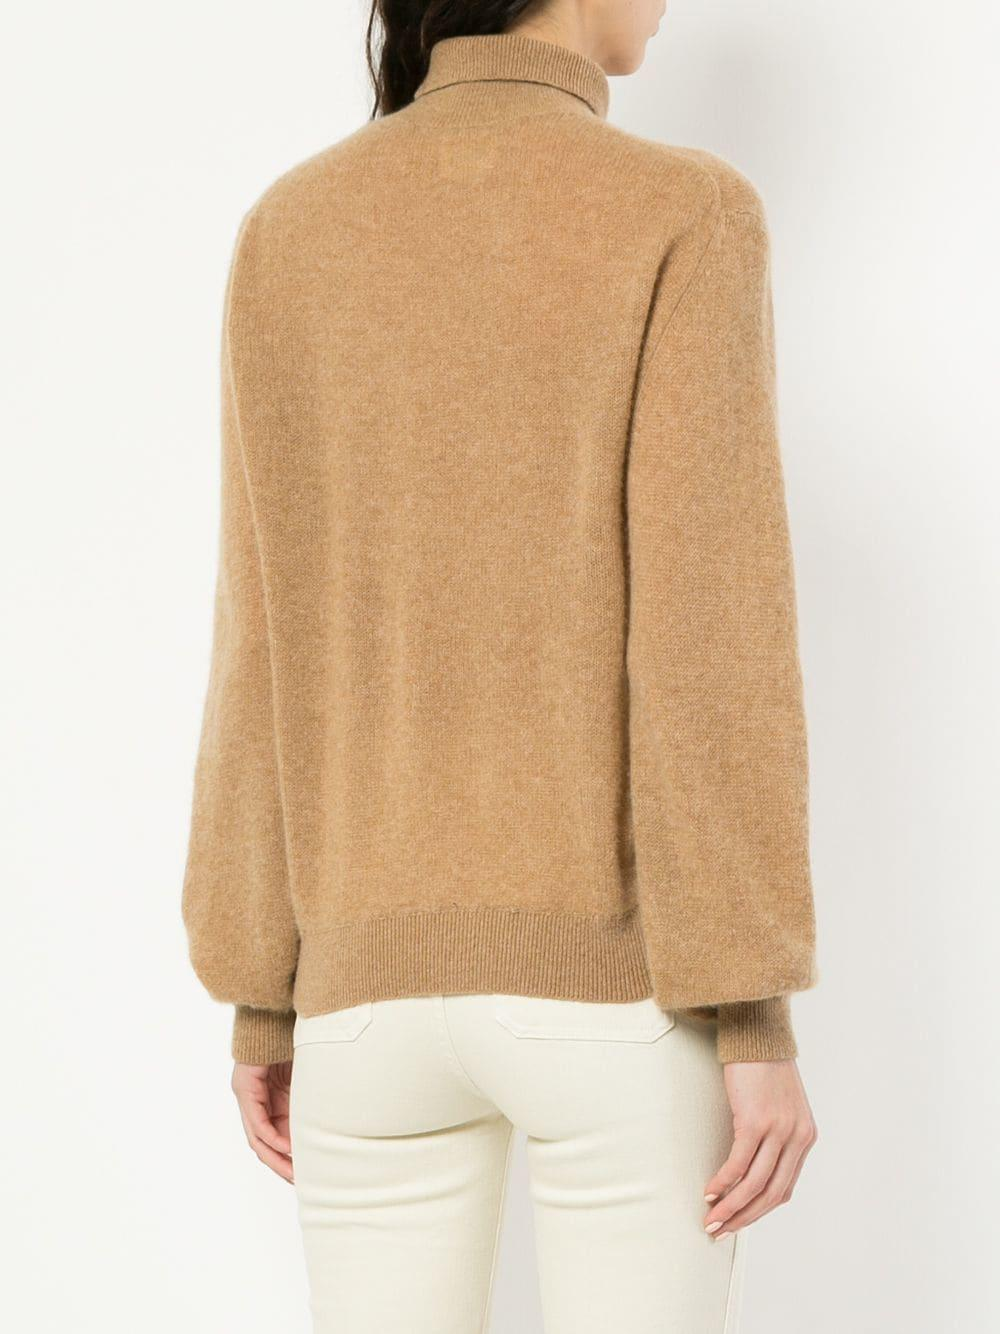 Julie In Cashmere Khaite Sweater Brown Lyst YdqARW